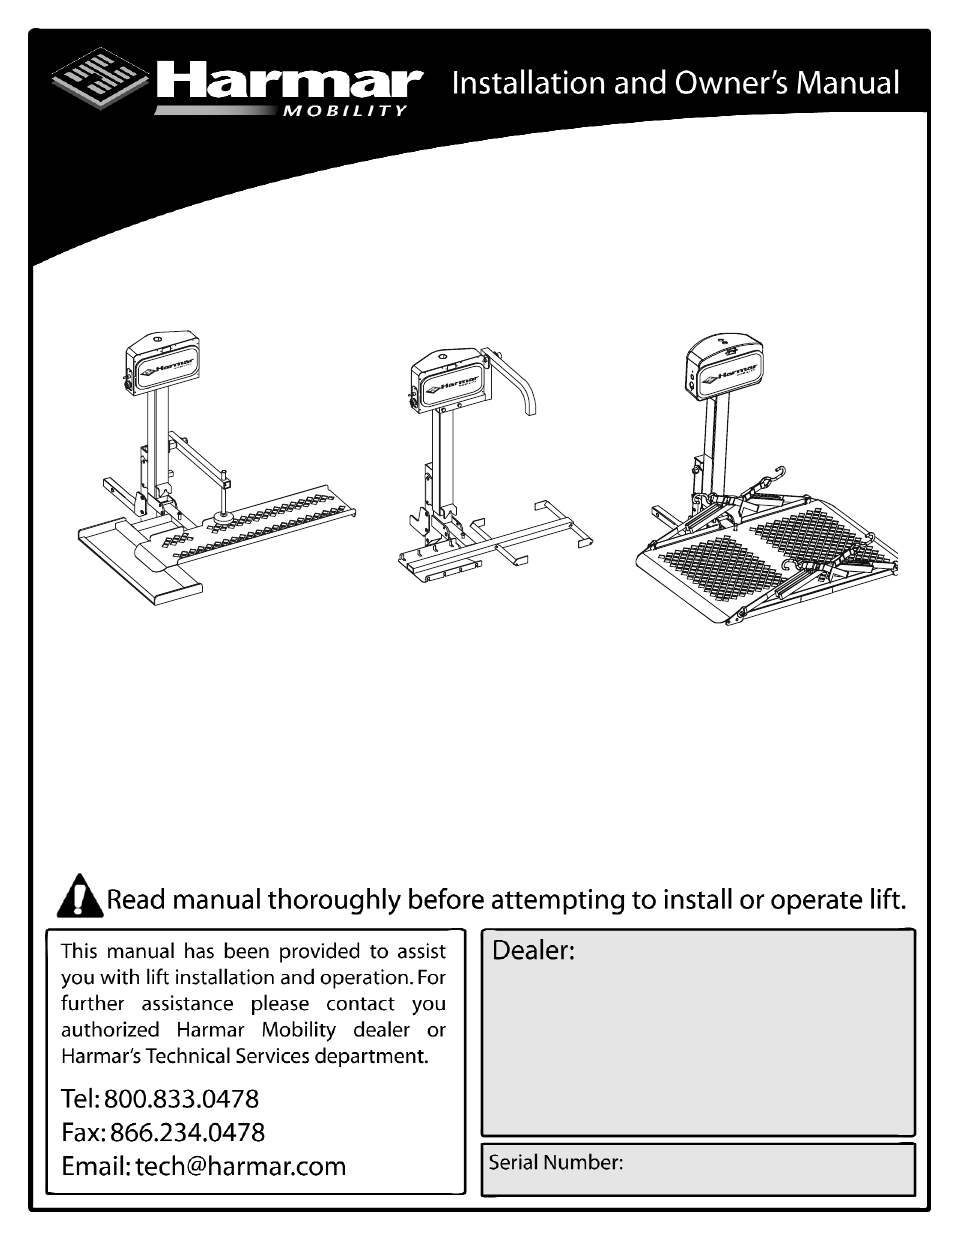 Harmar Mobility AL010 User Manual   20 pages   Also for: LiftAL030 on